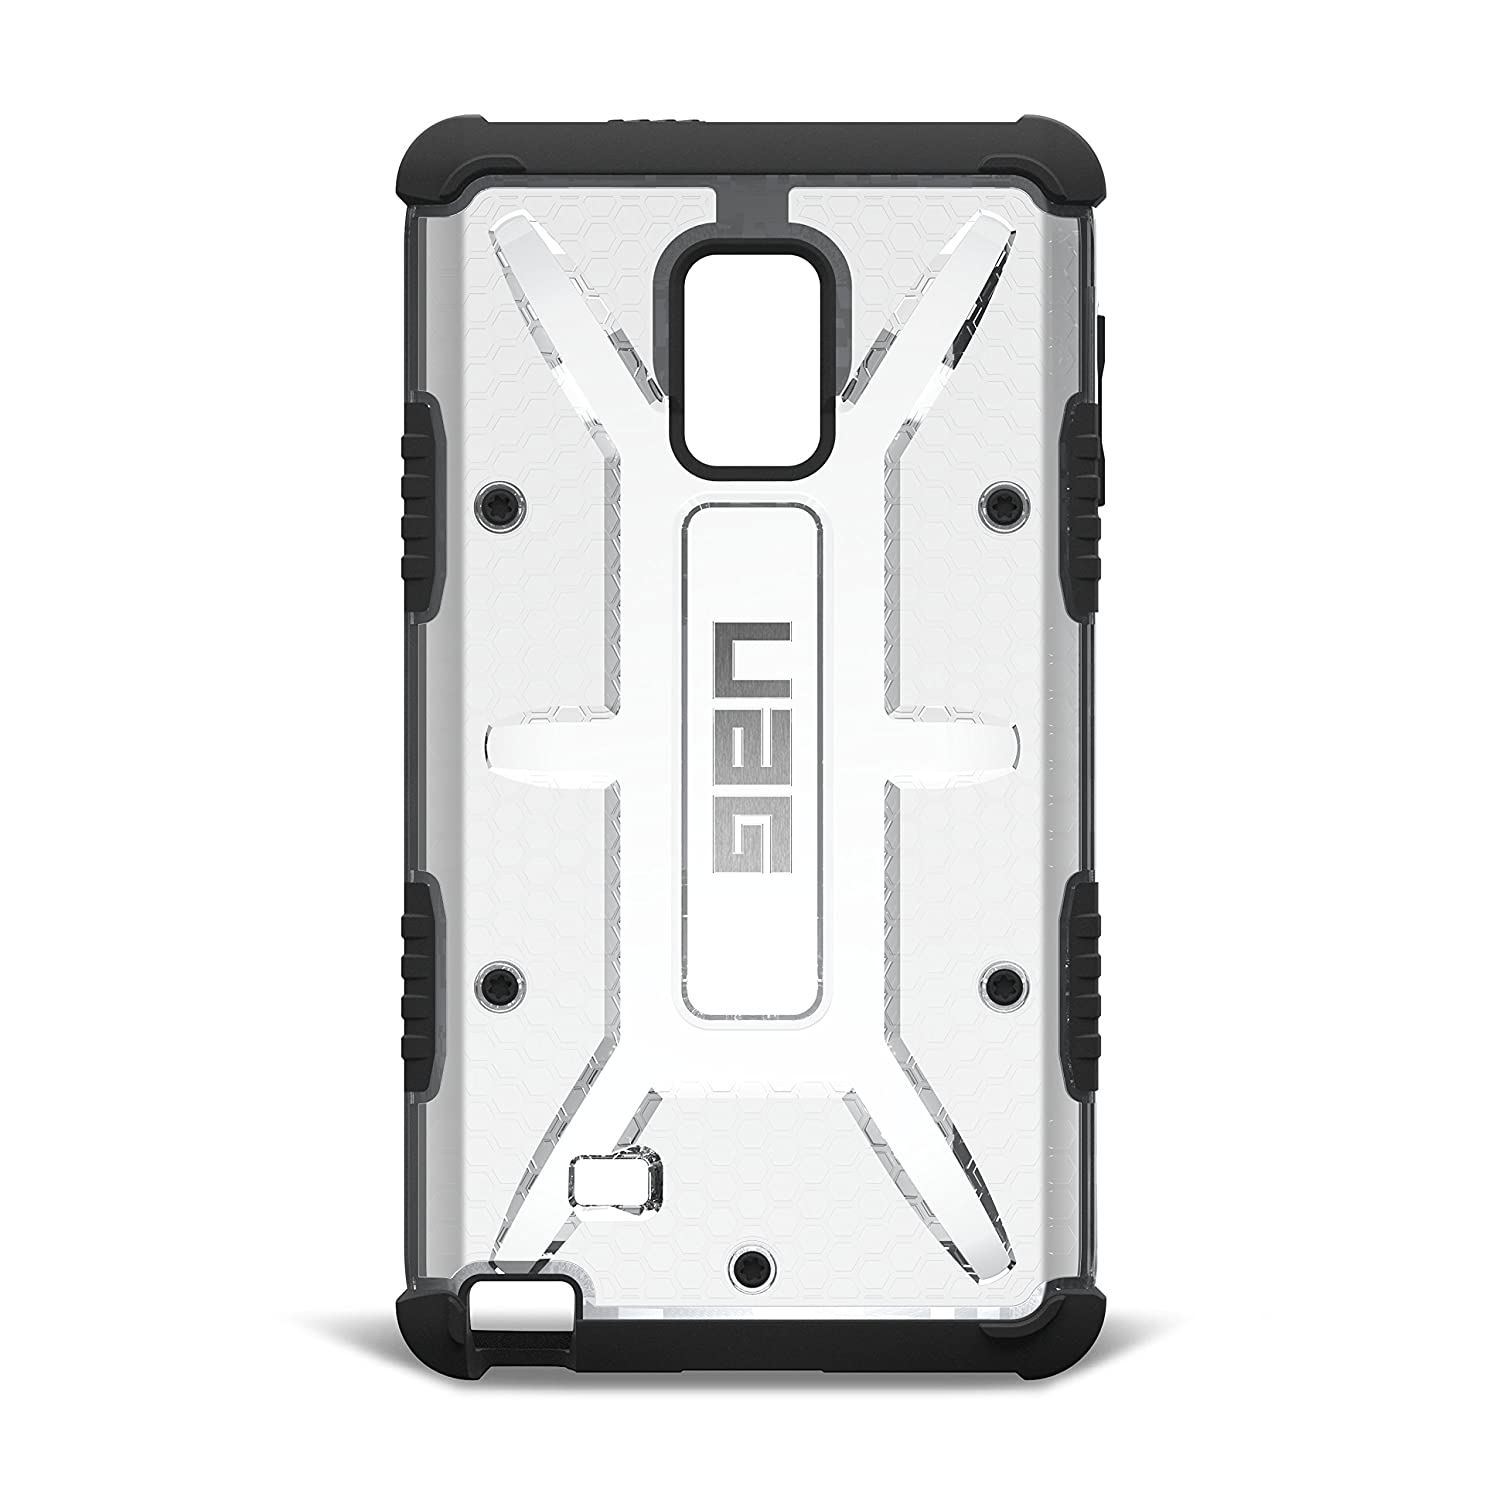 Galaxy s6 cases shop samsung cases online uag urban armor gear - Urban Armor Gear Case For Samsung Galaxy Note Edge Amazon Co Uk Electronics